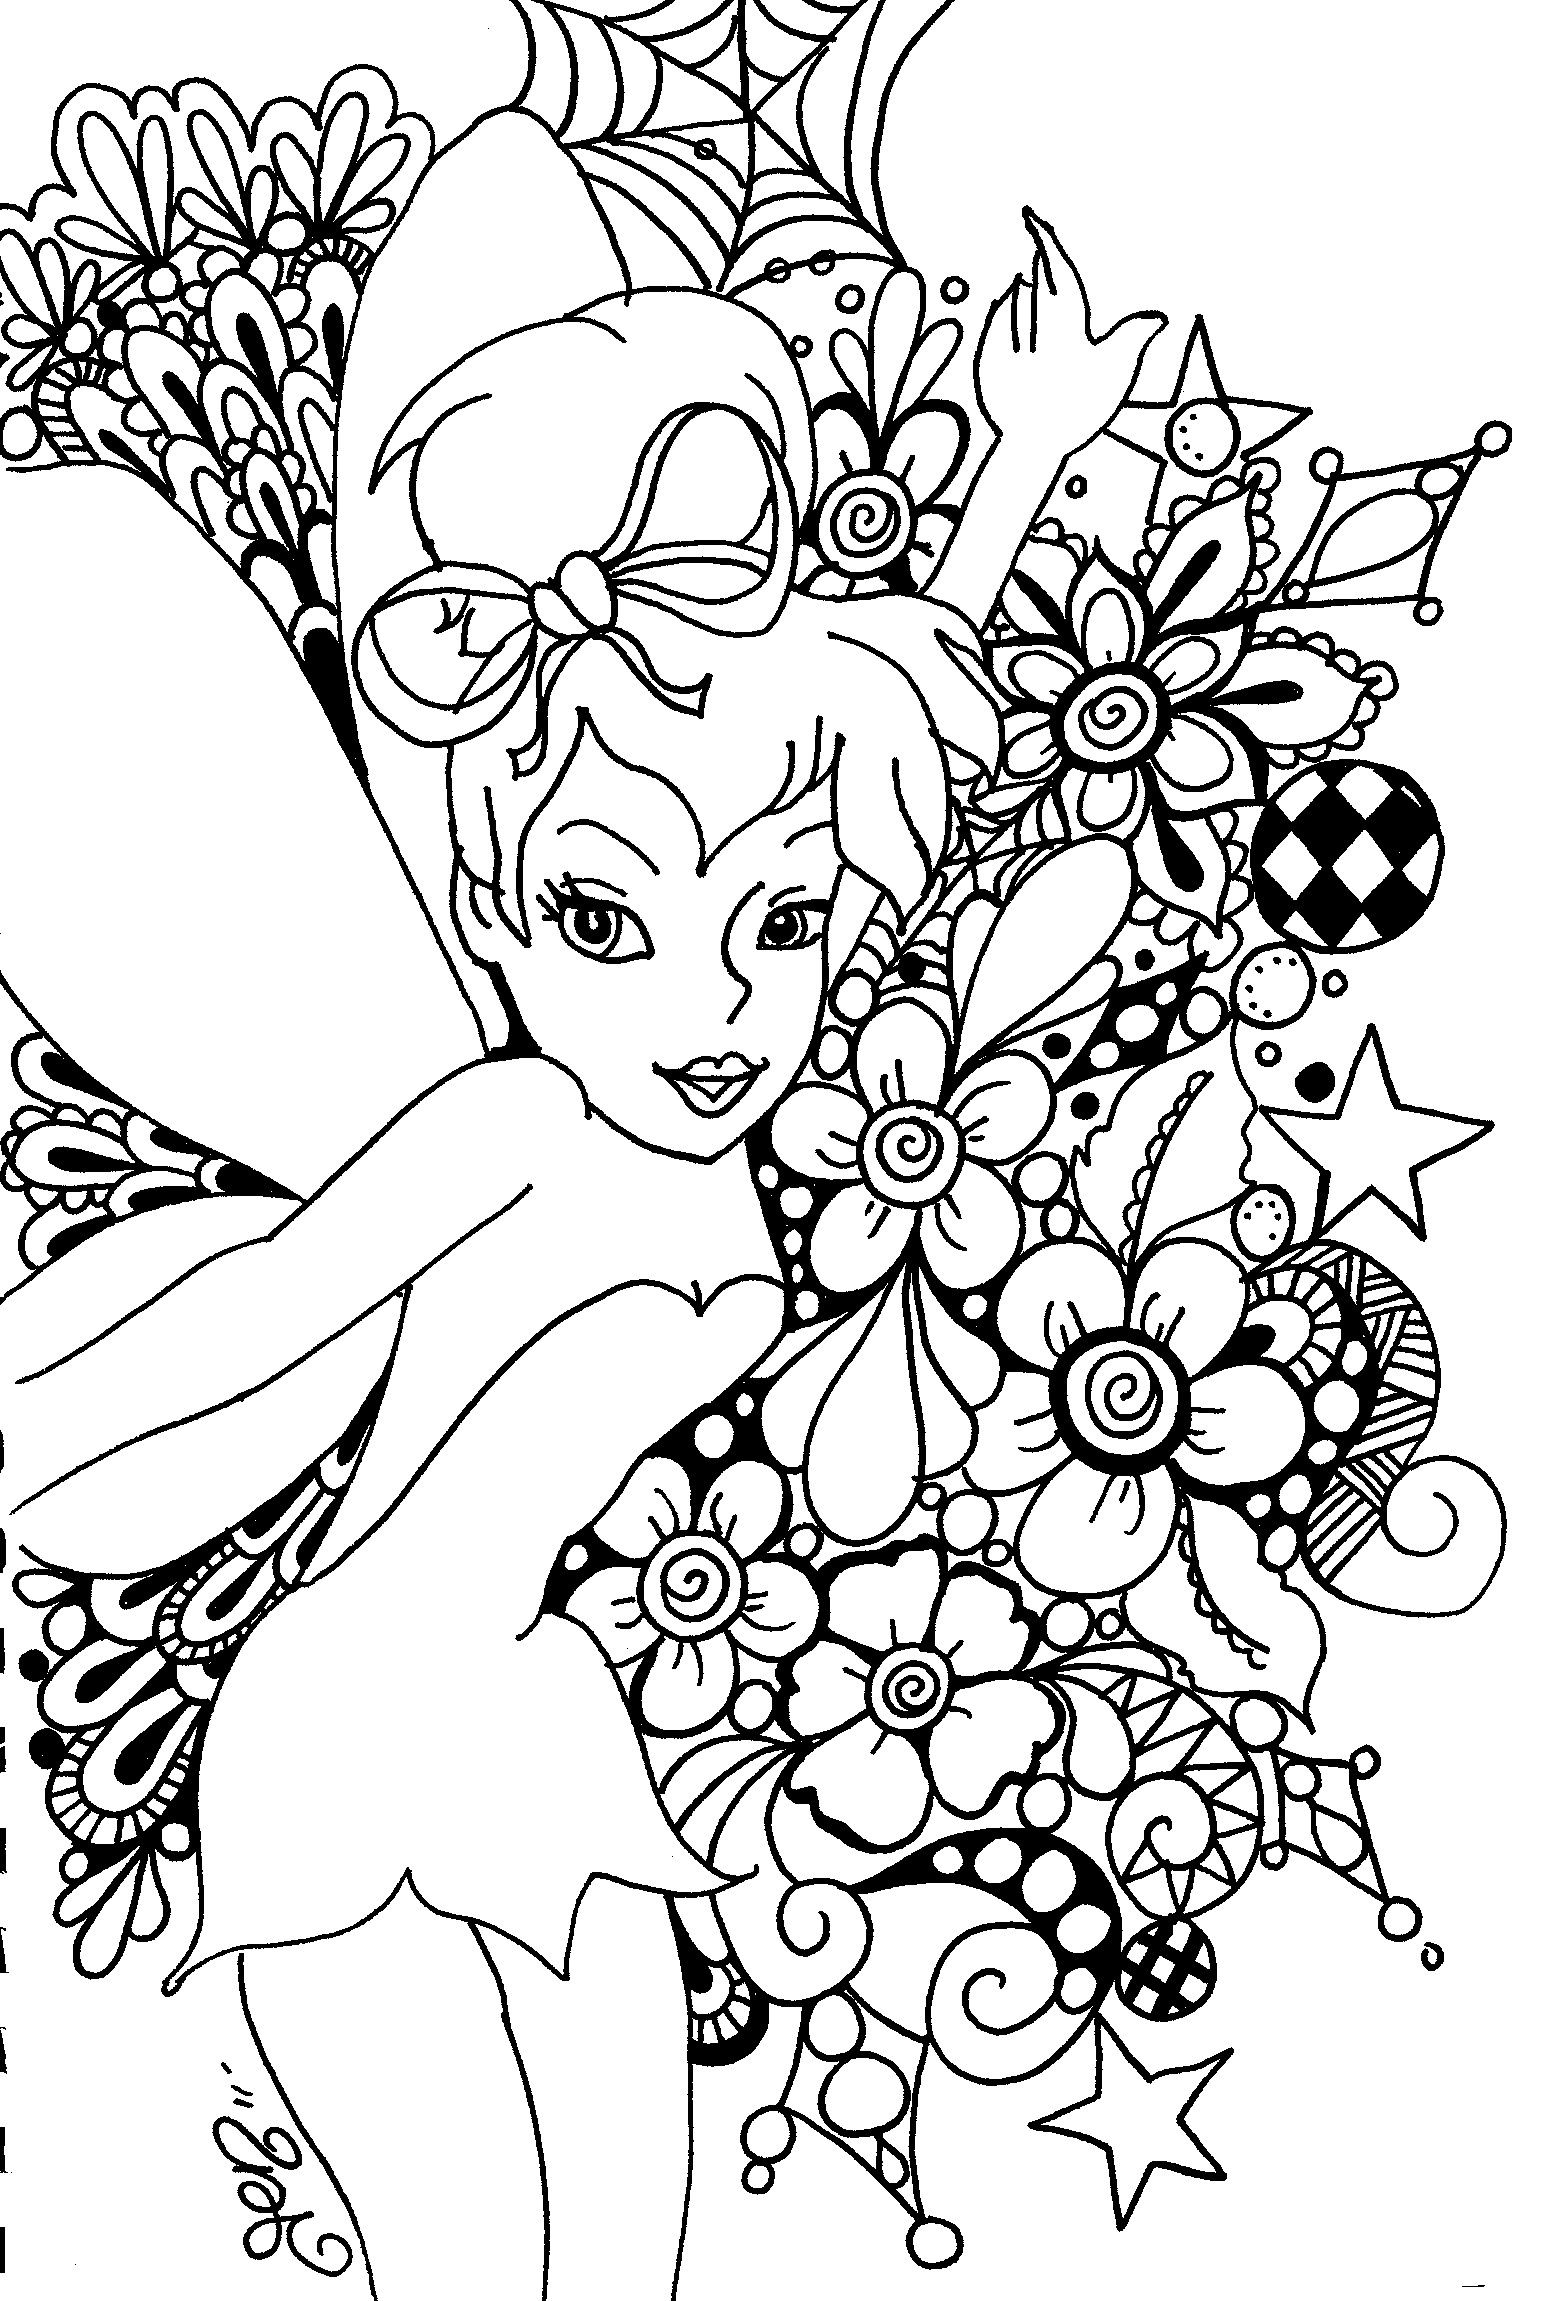 Free Printable Tinkerbell Coloring Pages For Kids | Cute ...